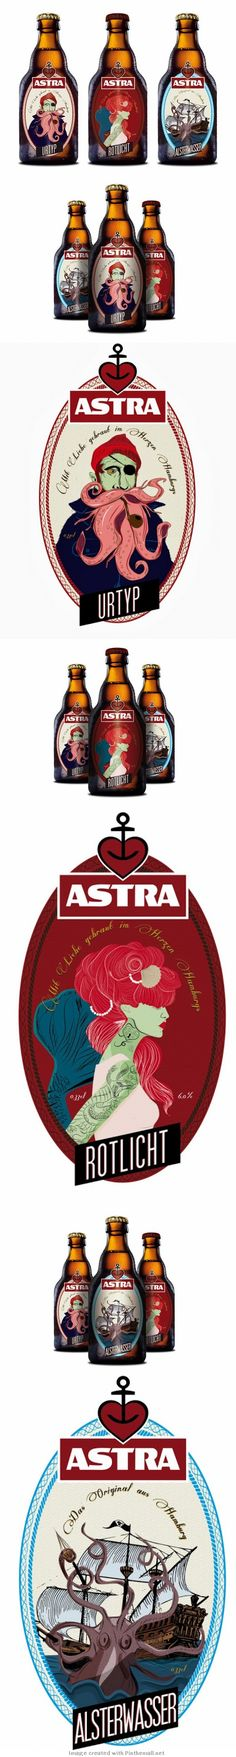 How awesome would it be to have people we know do illustrations of us and we make them into astra labels!